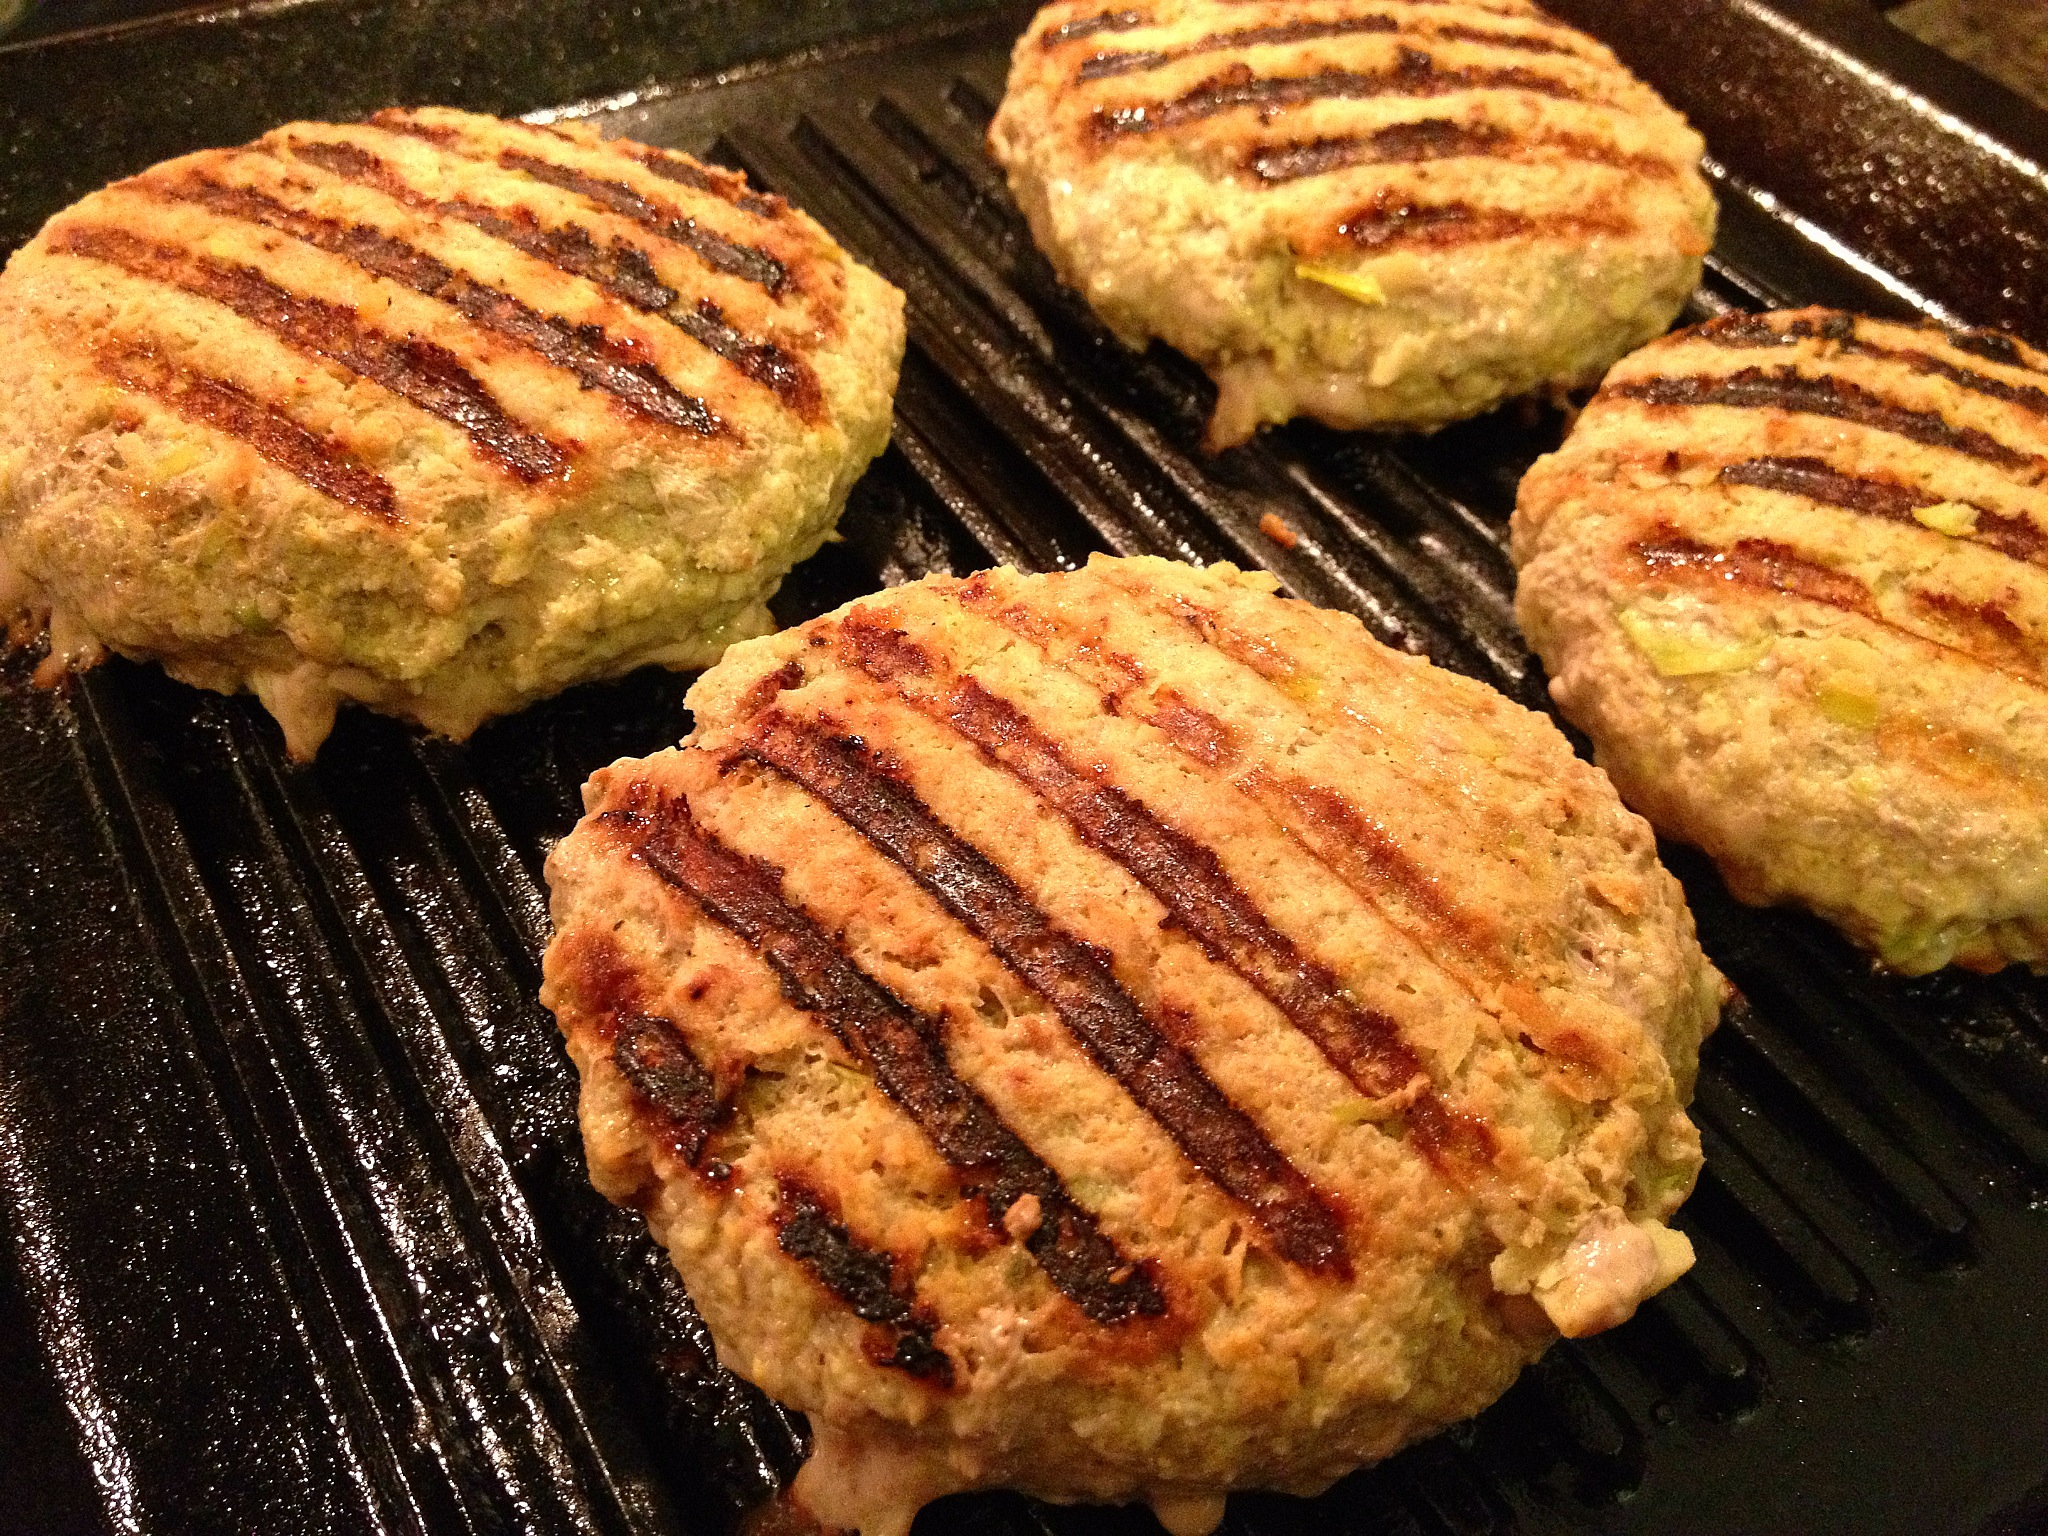 Grilling curried turkey burgers